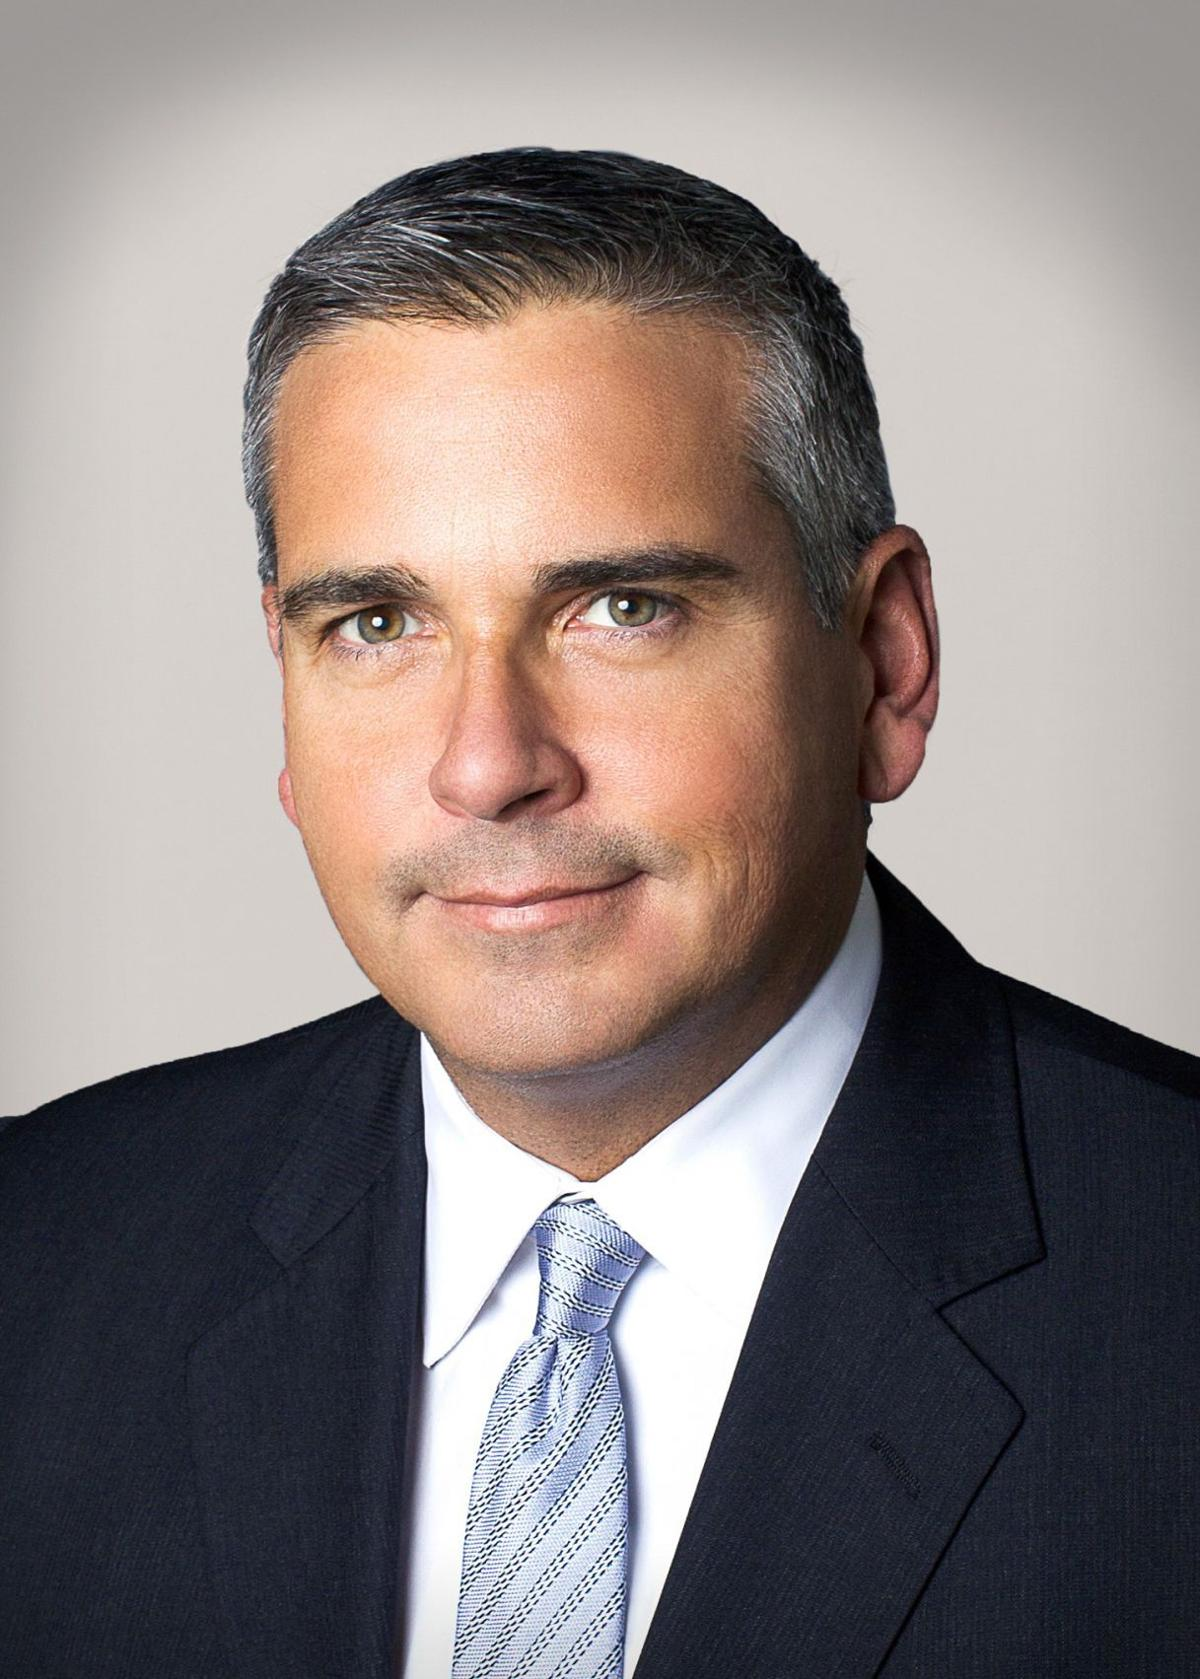 Iowa state Sen. Matt McCoy